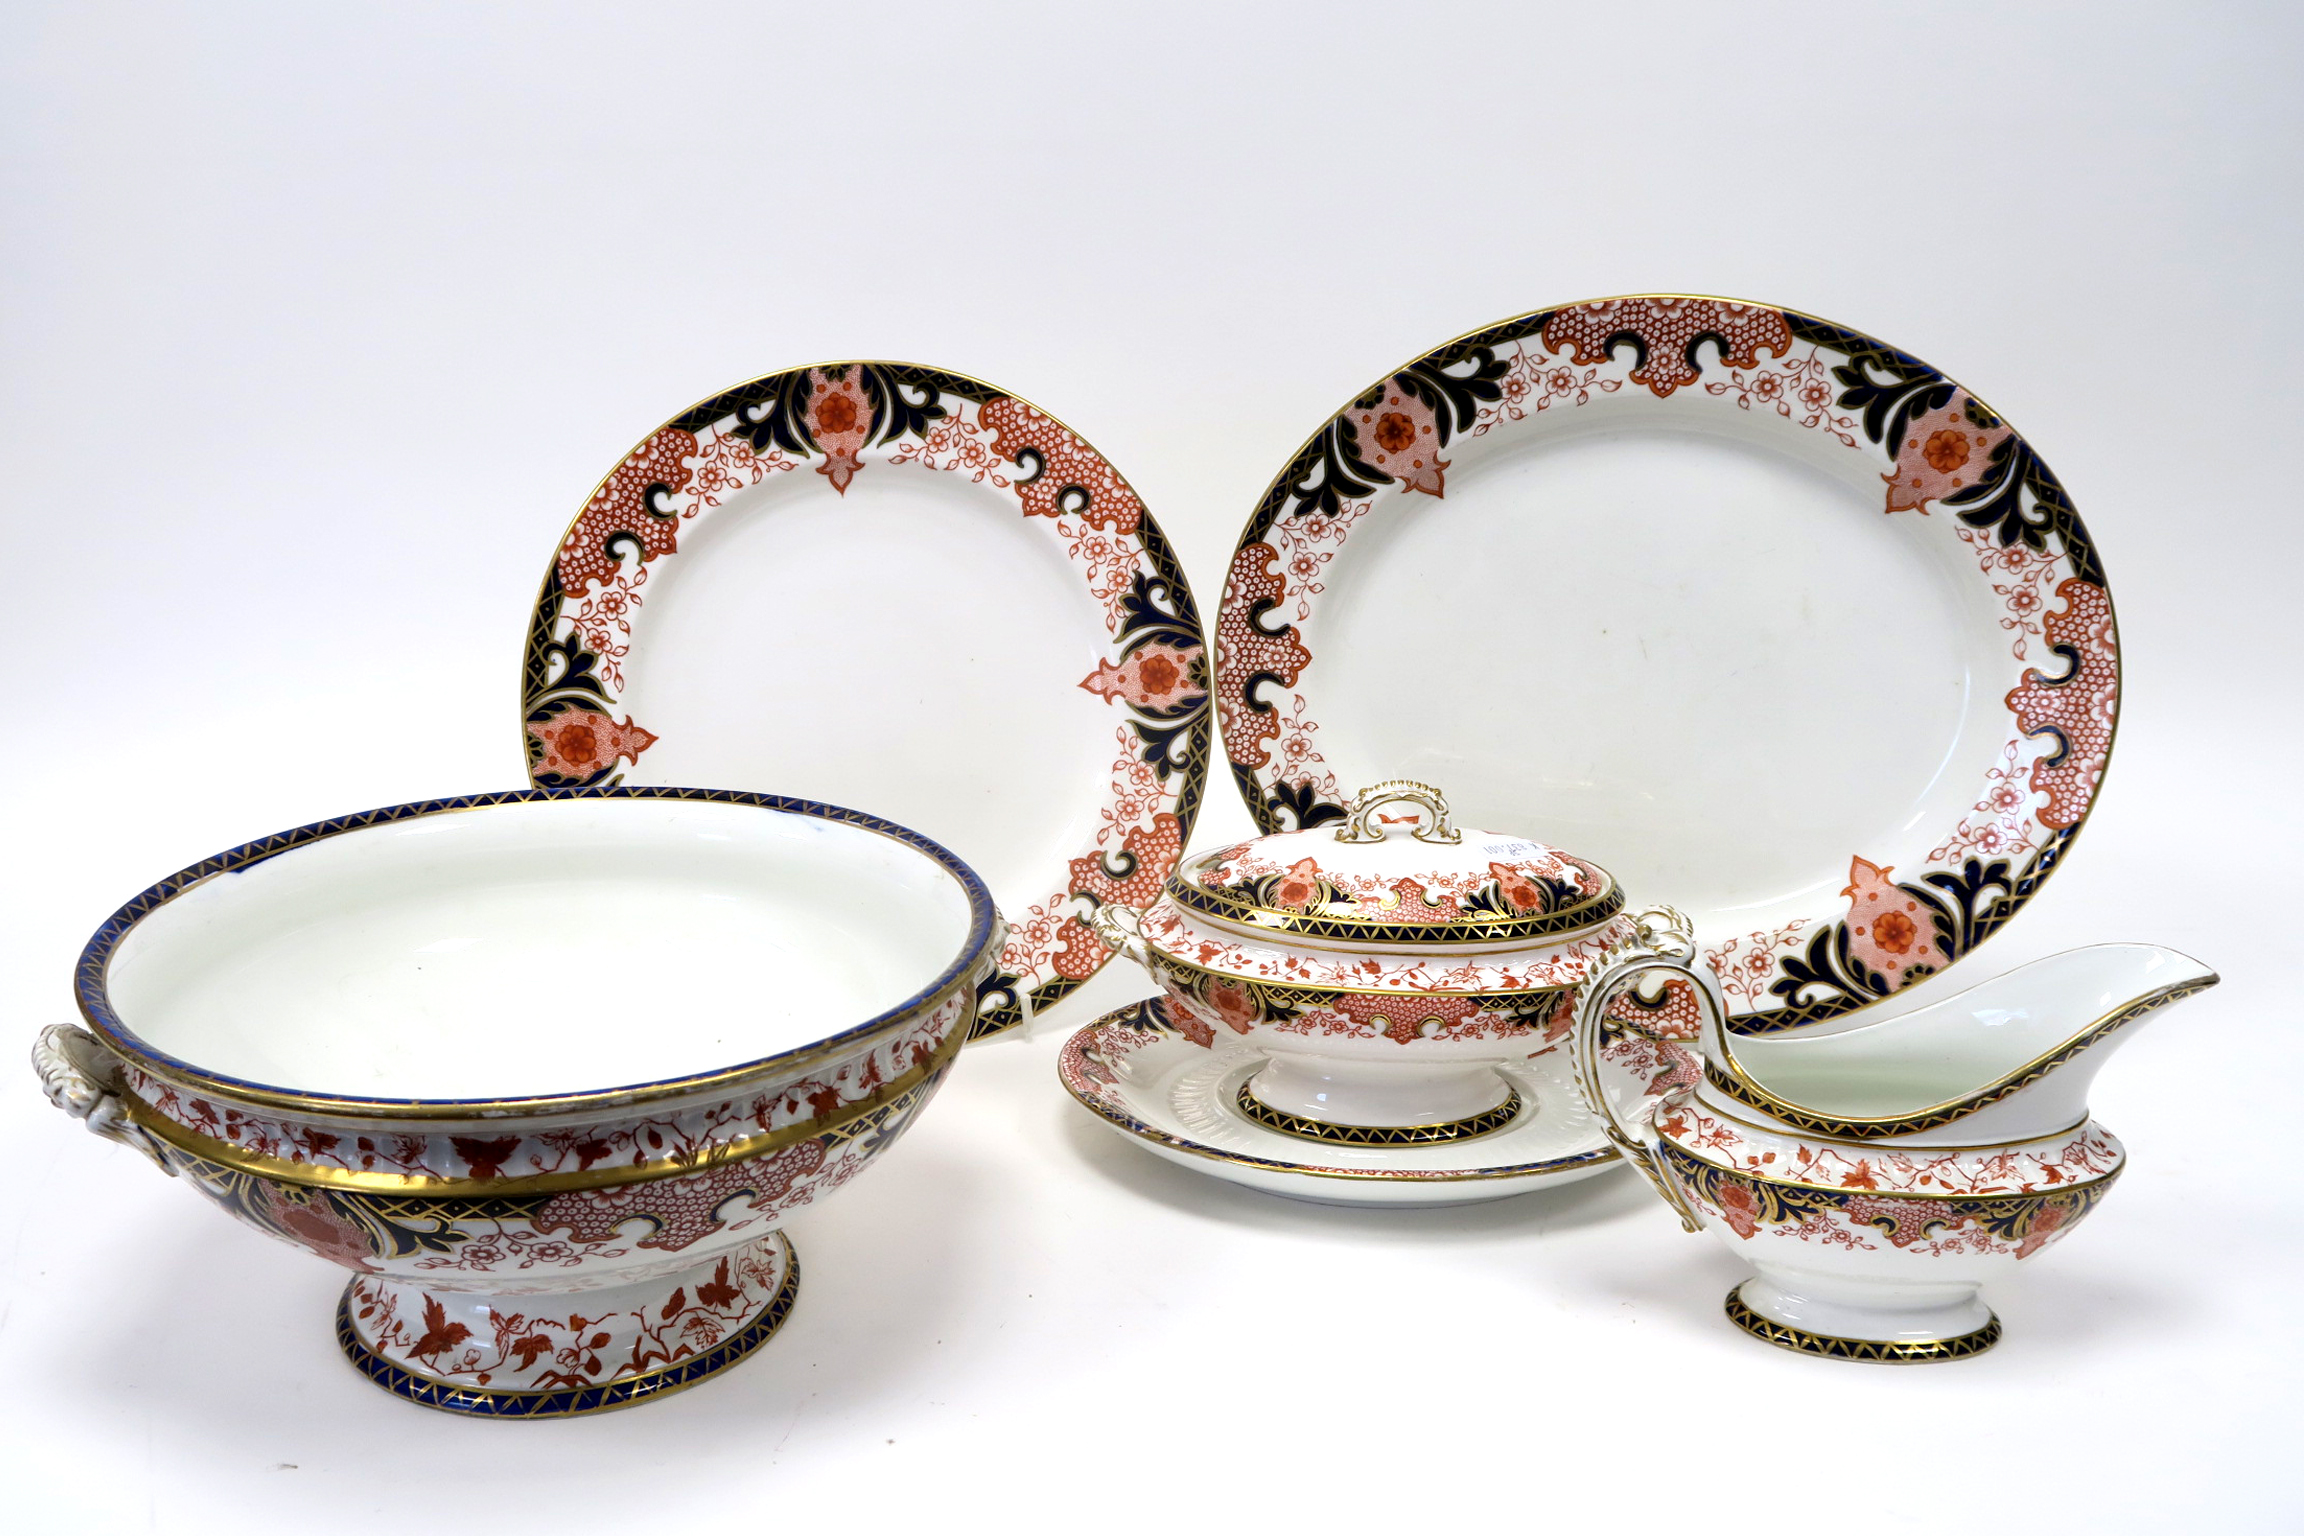 Lot 628 - A Late XIX Century Derby Porcelain Part Dinner Service, decorated in Imari pattern 2151 with flowers